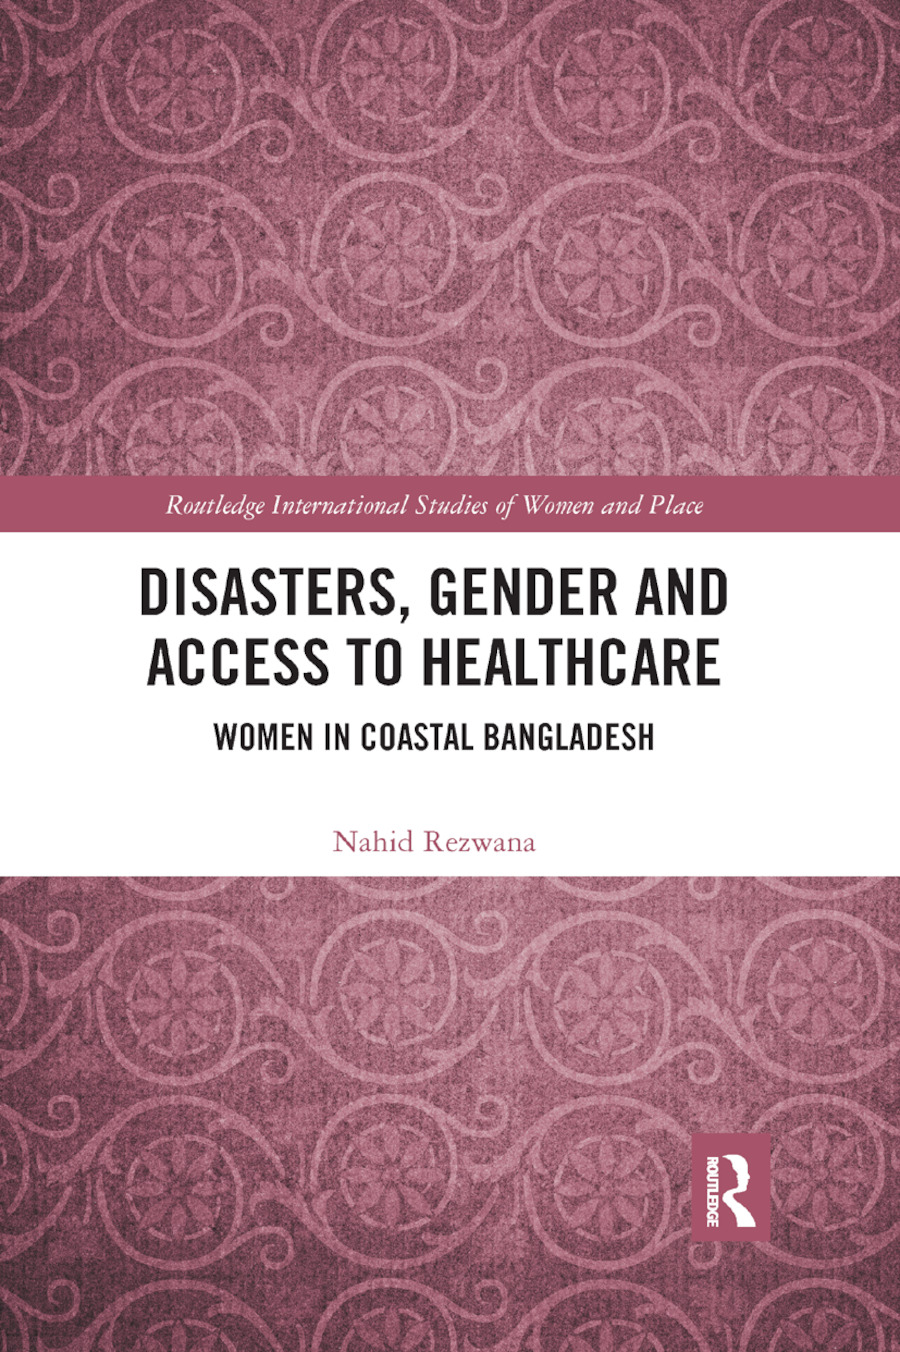 Disasters, Gender and Access to Healthcare: Women in Coastal Bangladesh book cover